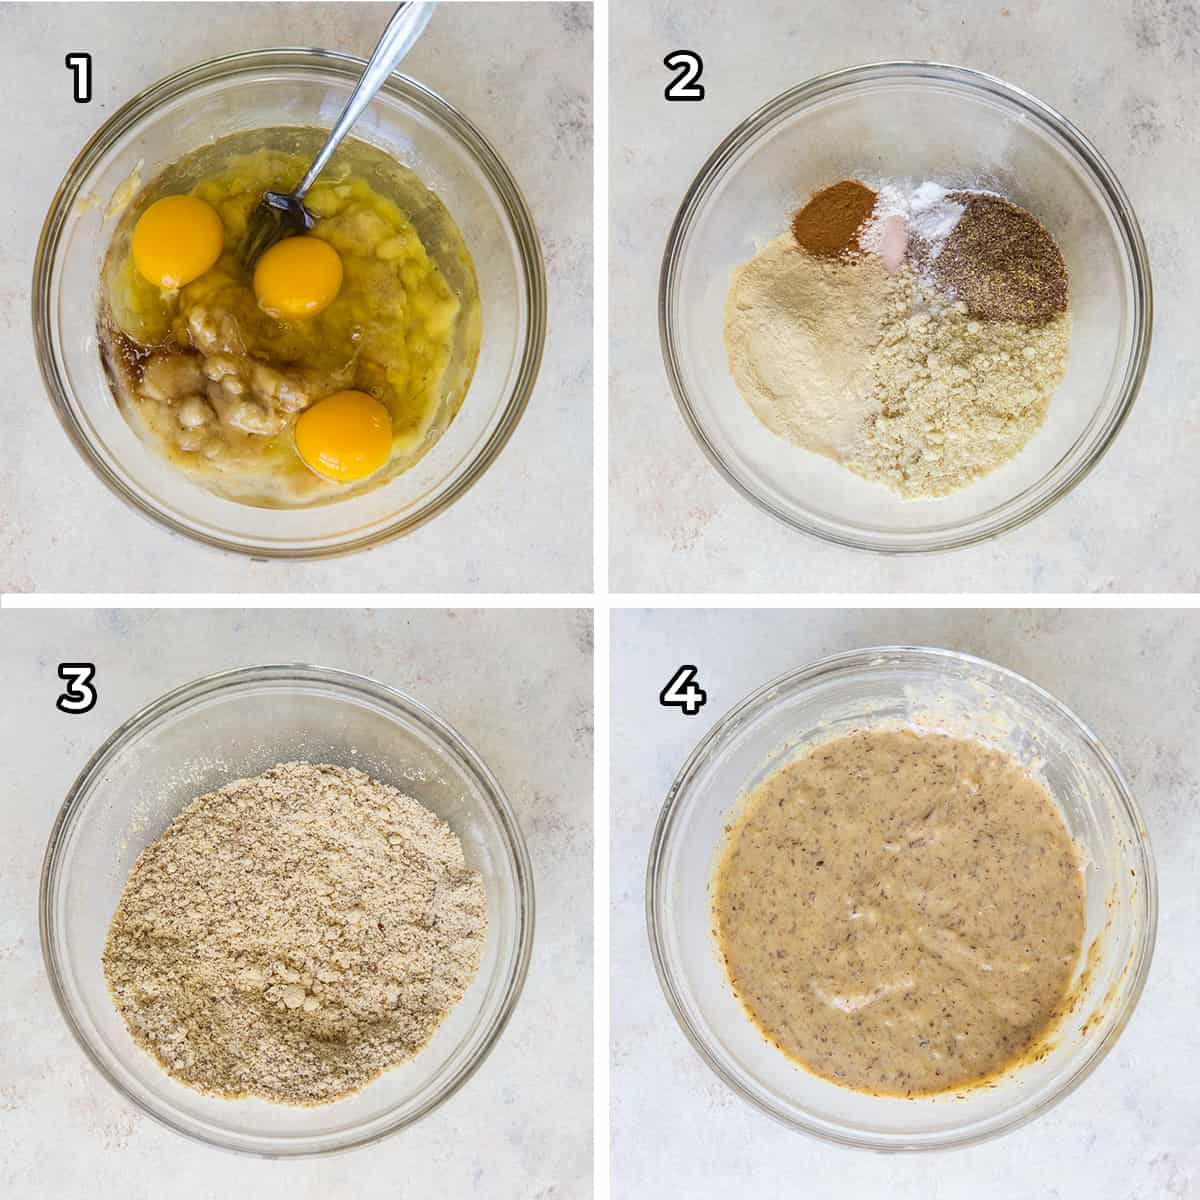 Muffin batter is combined in a glass mixing bowl.